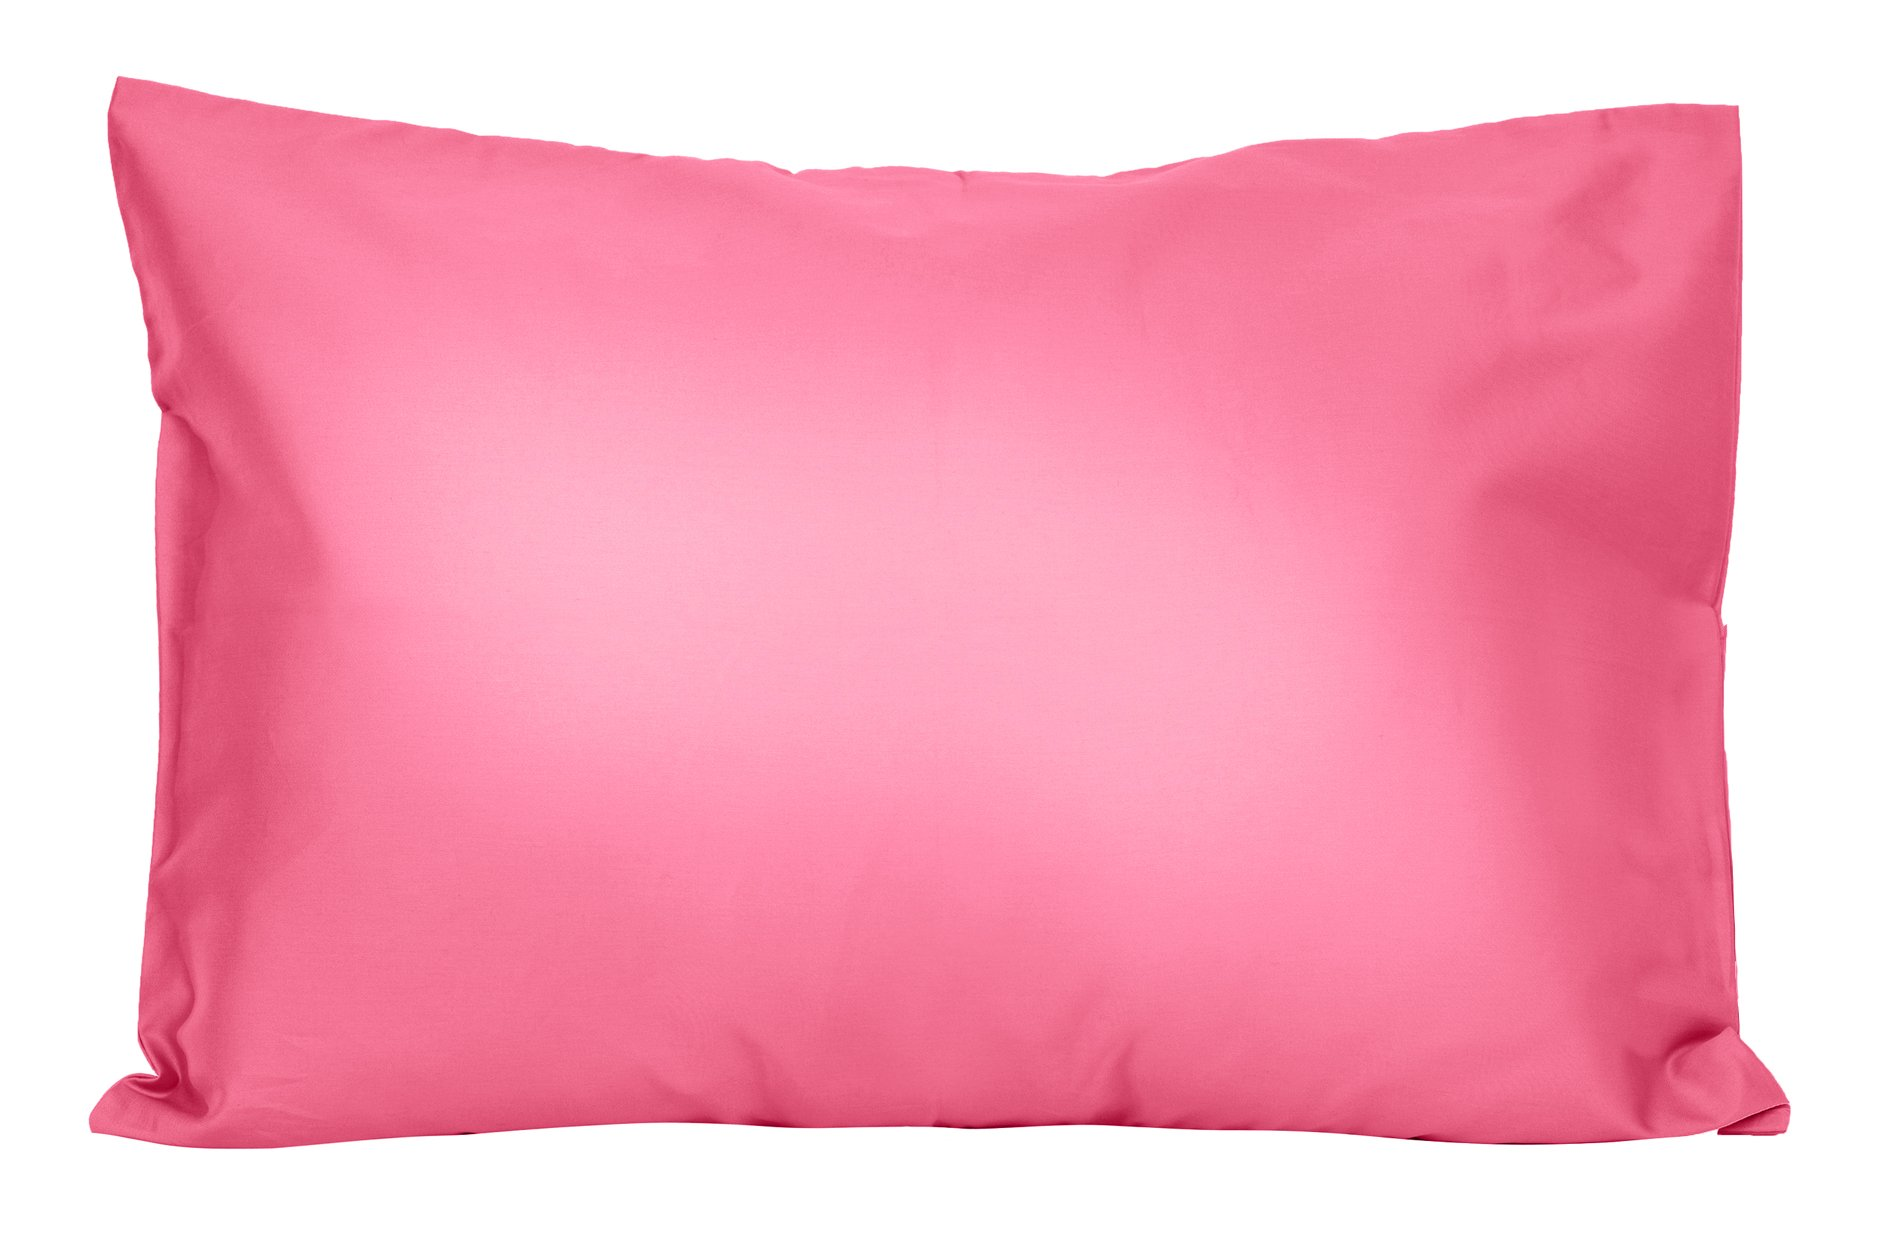 2 Hot Pink Toddler Pillowcases - Envelope Style - For Pillows Sized 13x18 and 14x19 - 100% Cotton With Soft Sateen Weave - Machine Washable - ZadisonJaxx Bellacolour Collection - 2 Pack